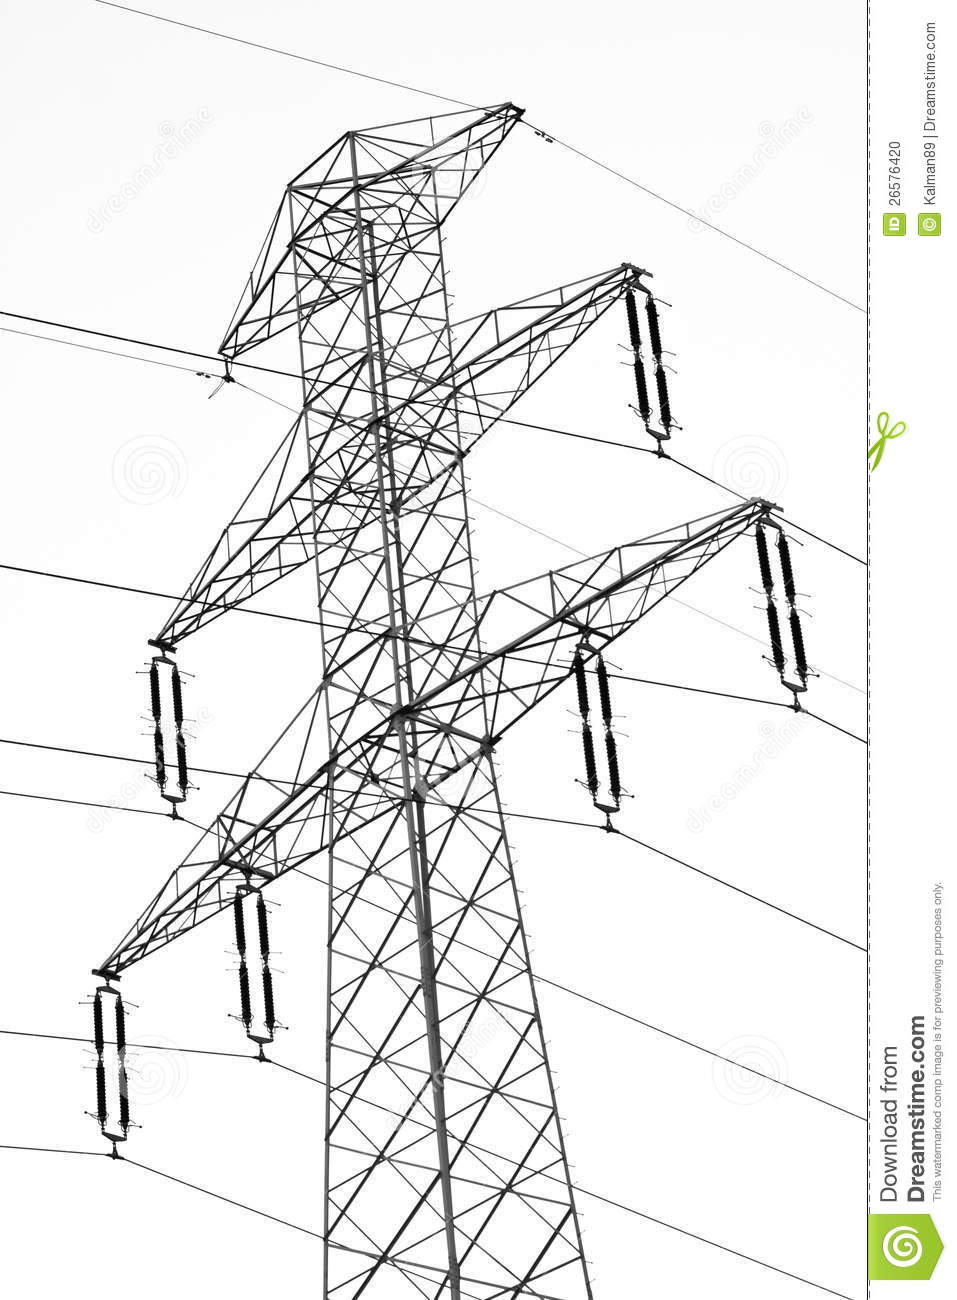 Electric pylon stock illustration. Image of pole